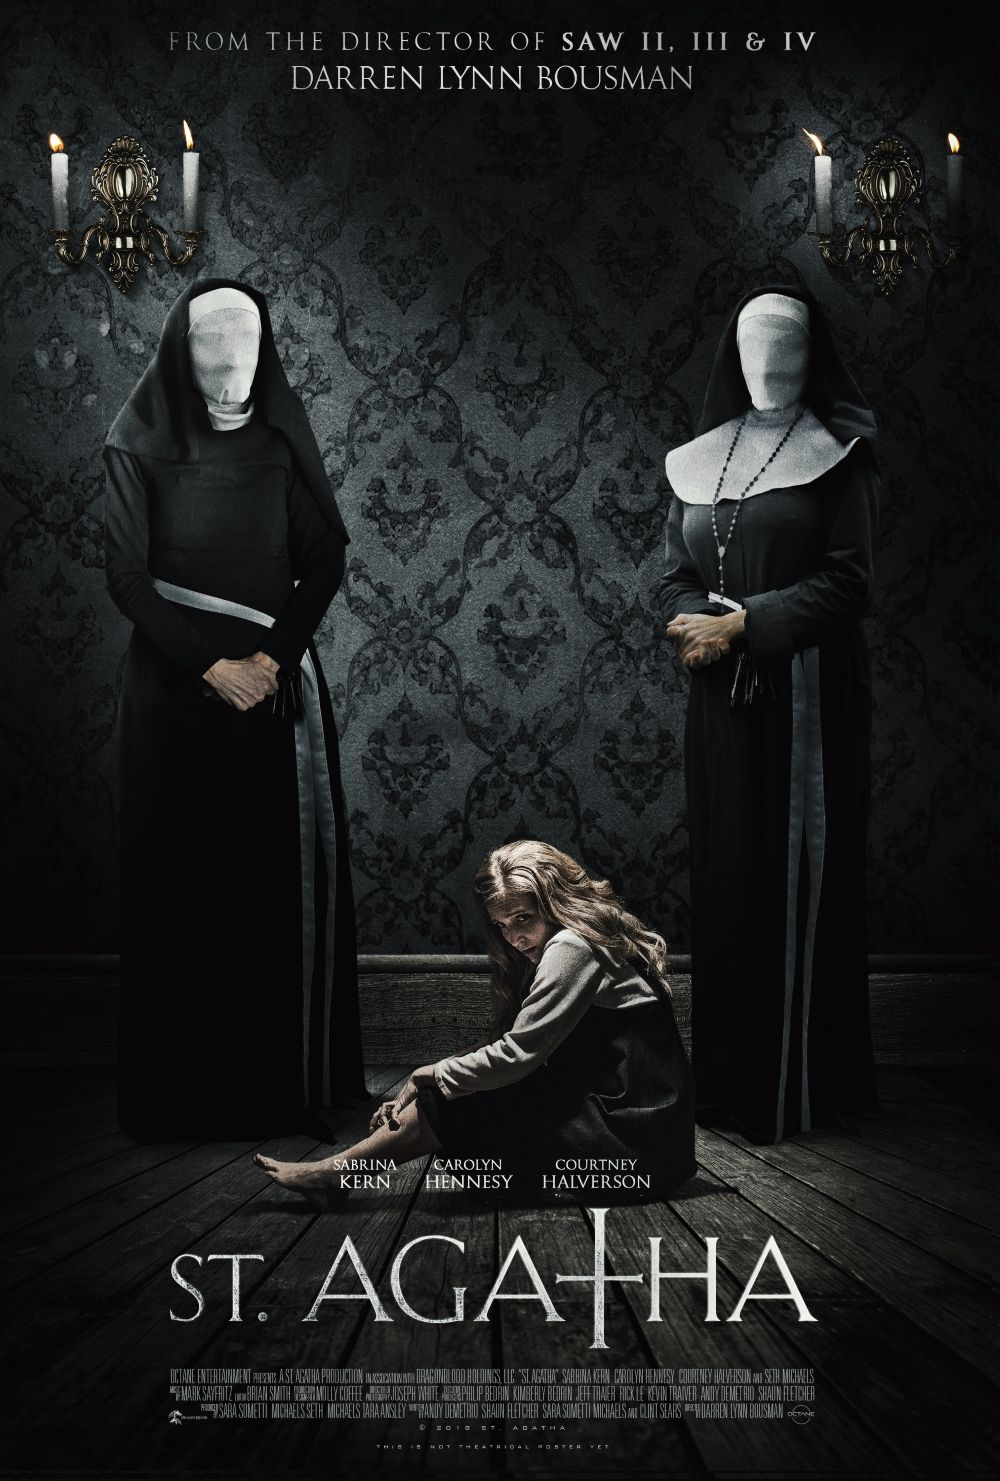 St Agatha New Movie Poster And New Pictures Https Teaser Trailer Com Movie St Agatha Stagatha Stagat Best Horror Movies Thriller Movies Saint Agatha